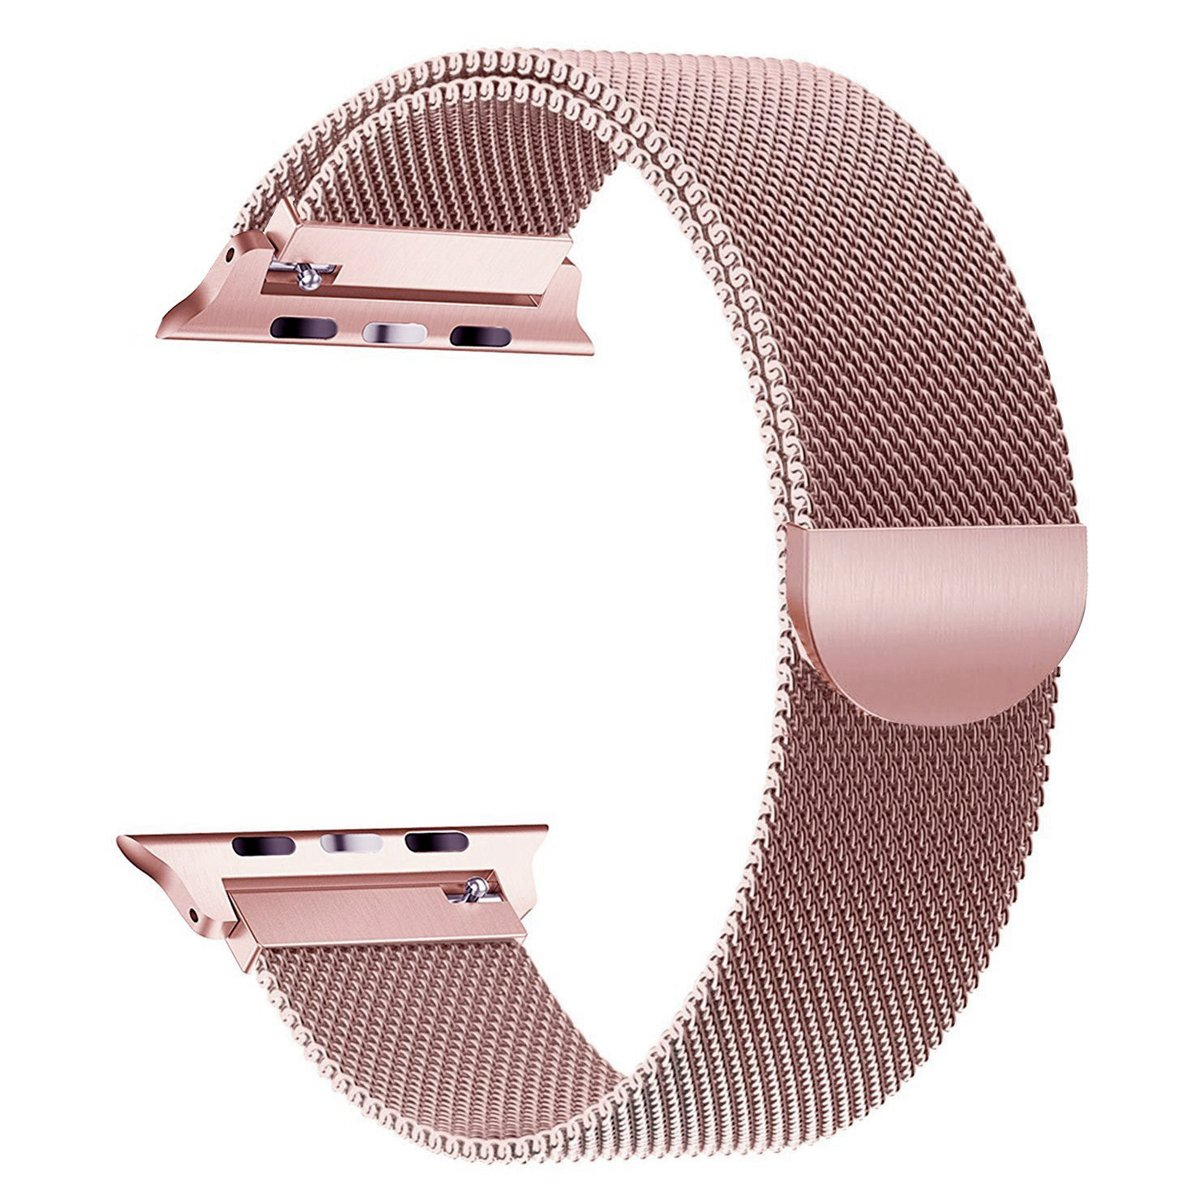 Stainless Steel Band for Apple Watch Replacement Mesh Strap Bracelet for iWatch Series 1 Series 2 Series 3 with Magnetic Closure Clasp 38mm Rose Gold-6